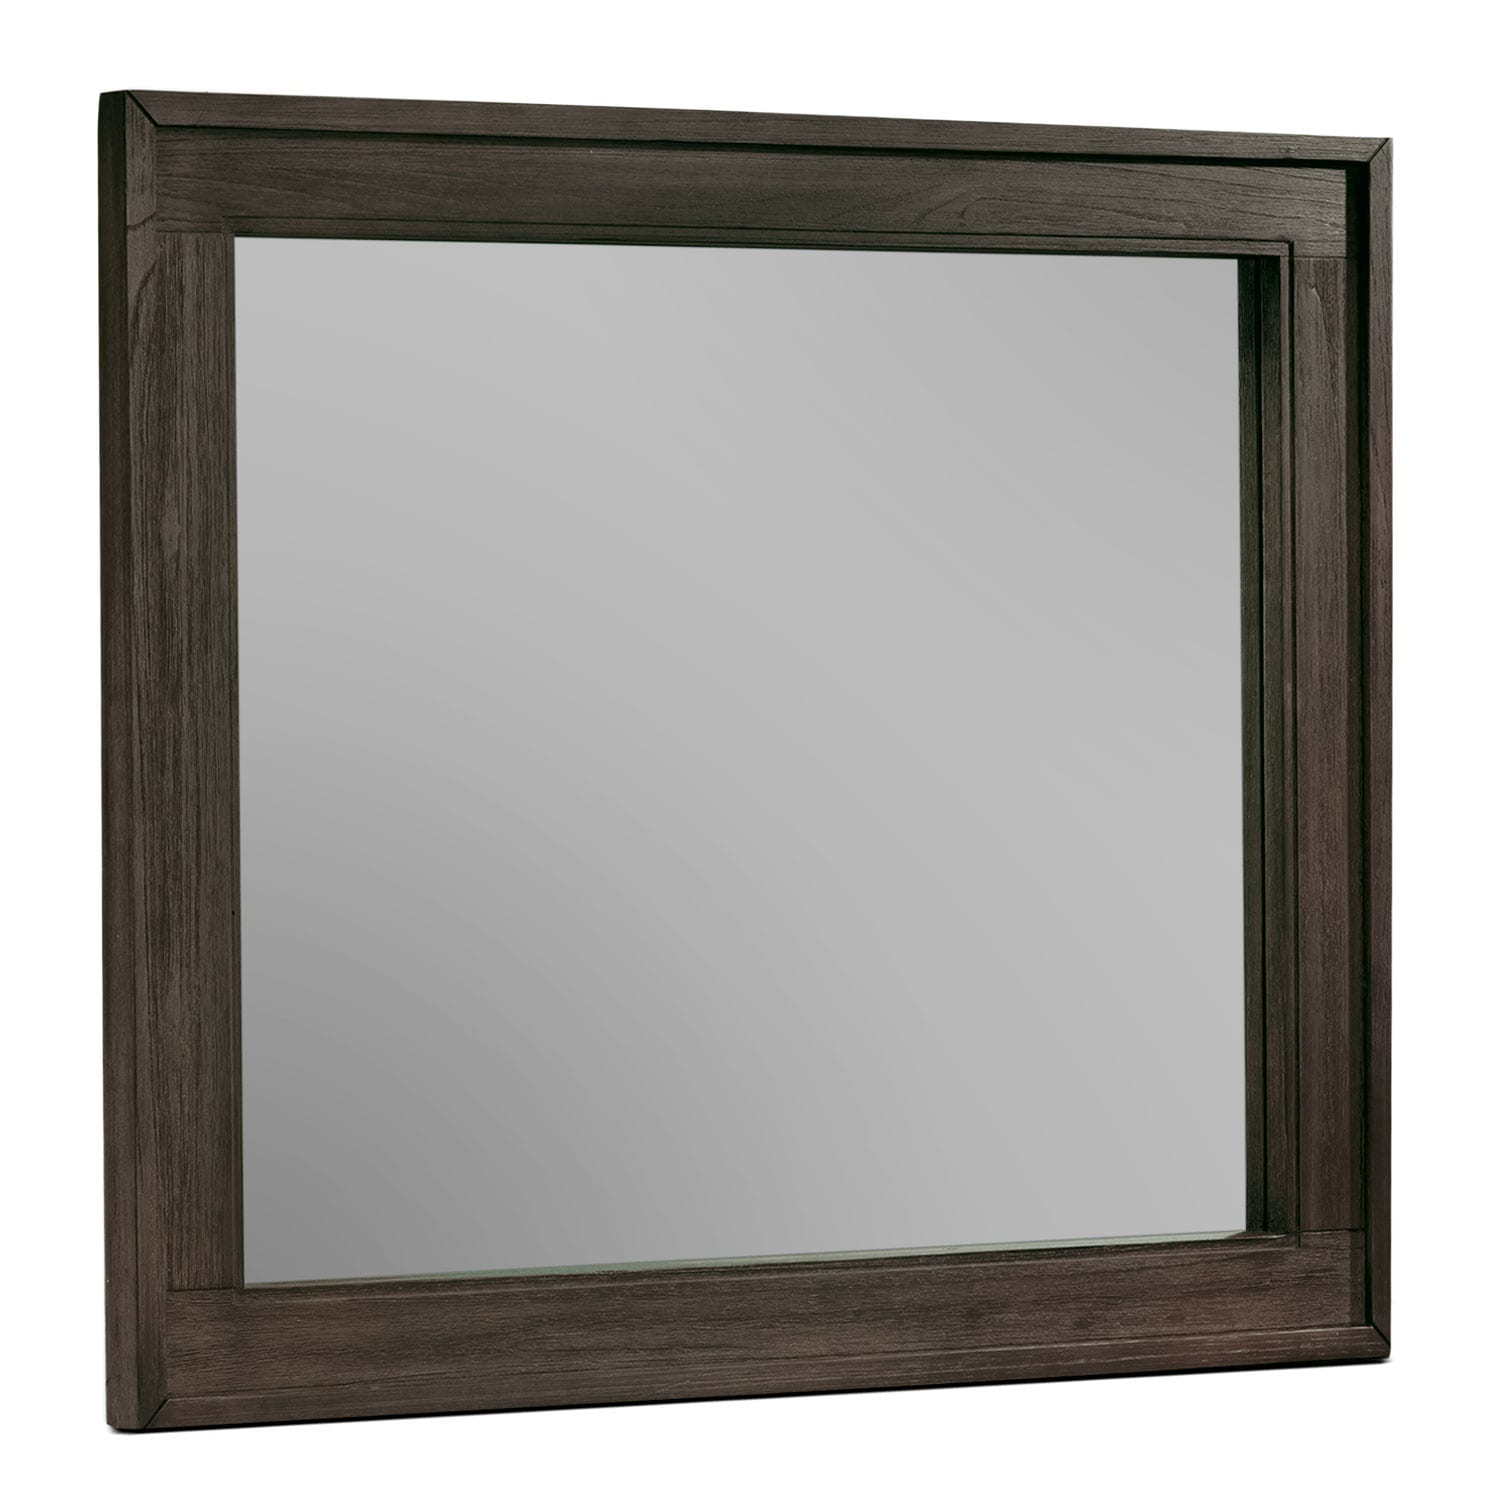 Bedroom Furniture - Bravo Landscape Mirror - Platinum Oak